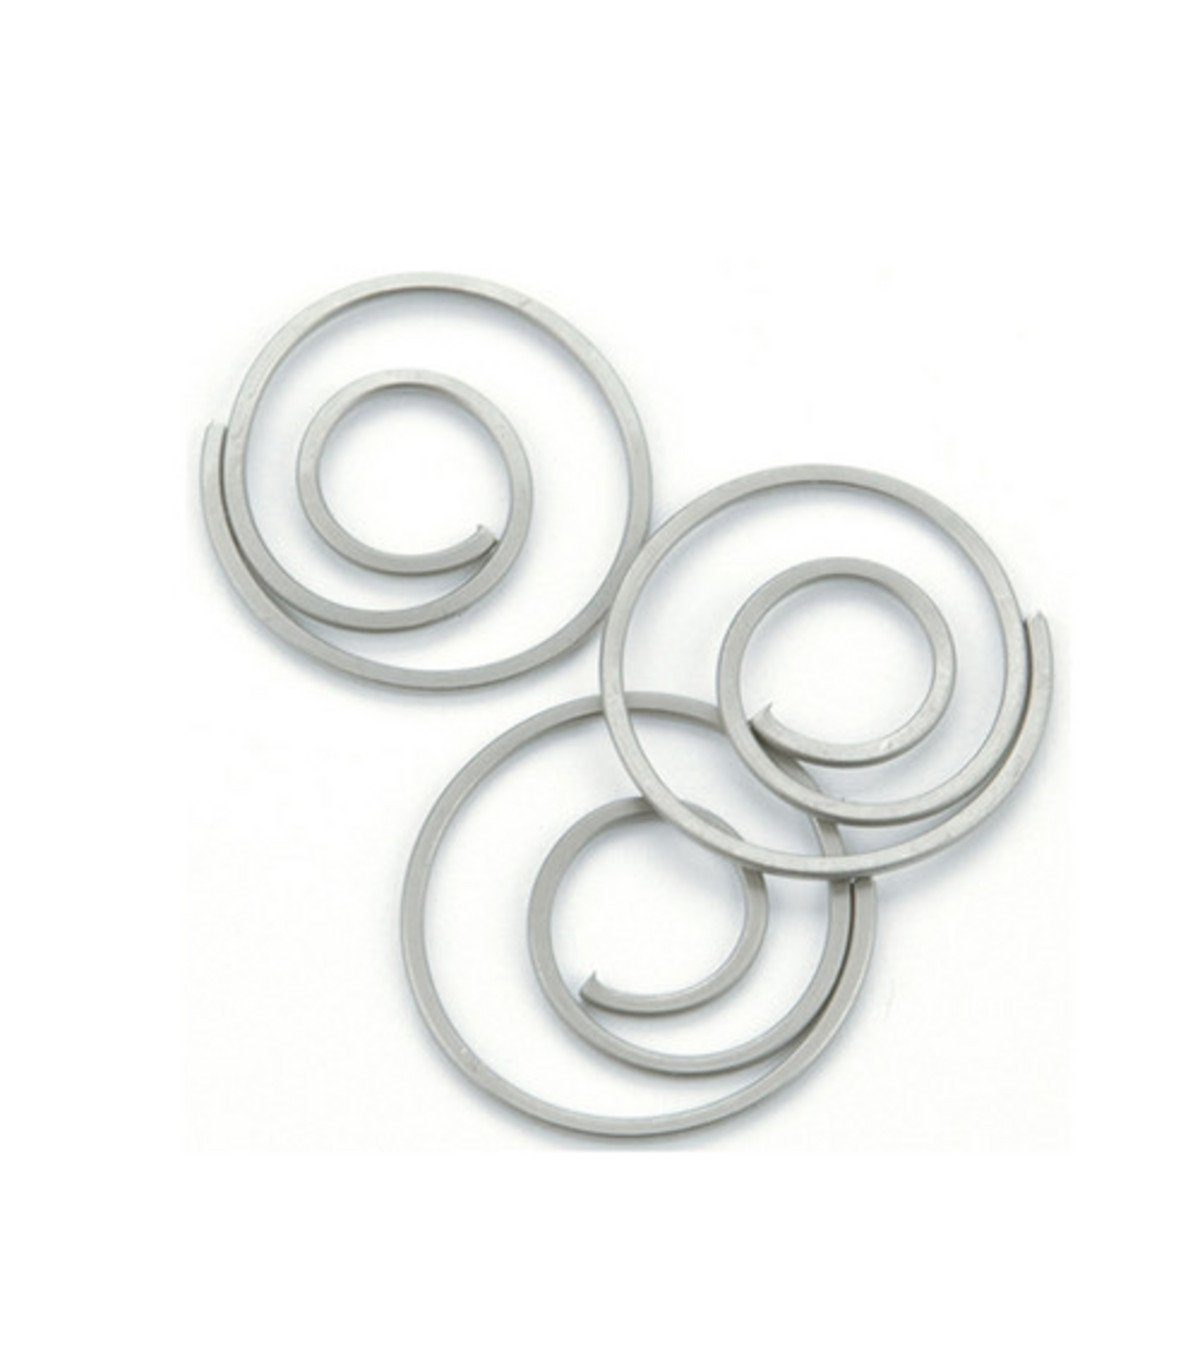 Spiral Clips 25/package